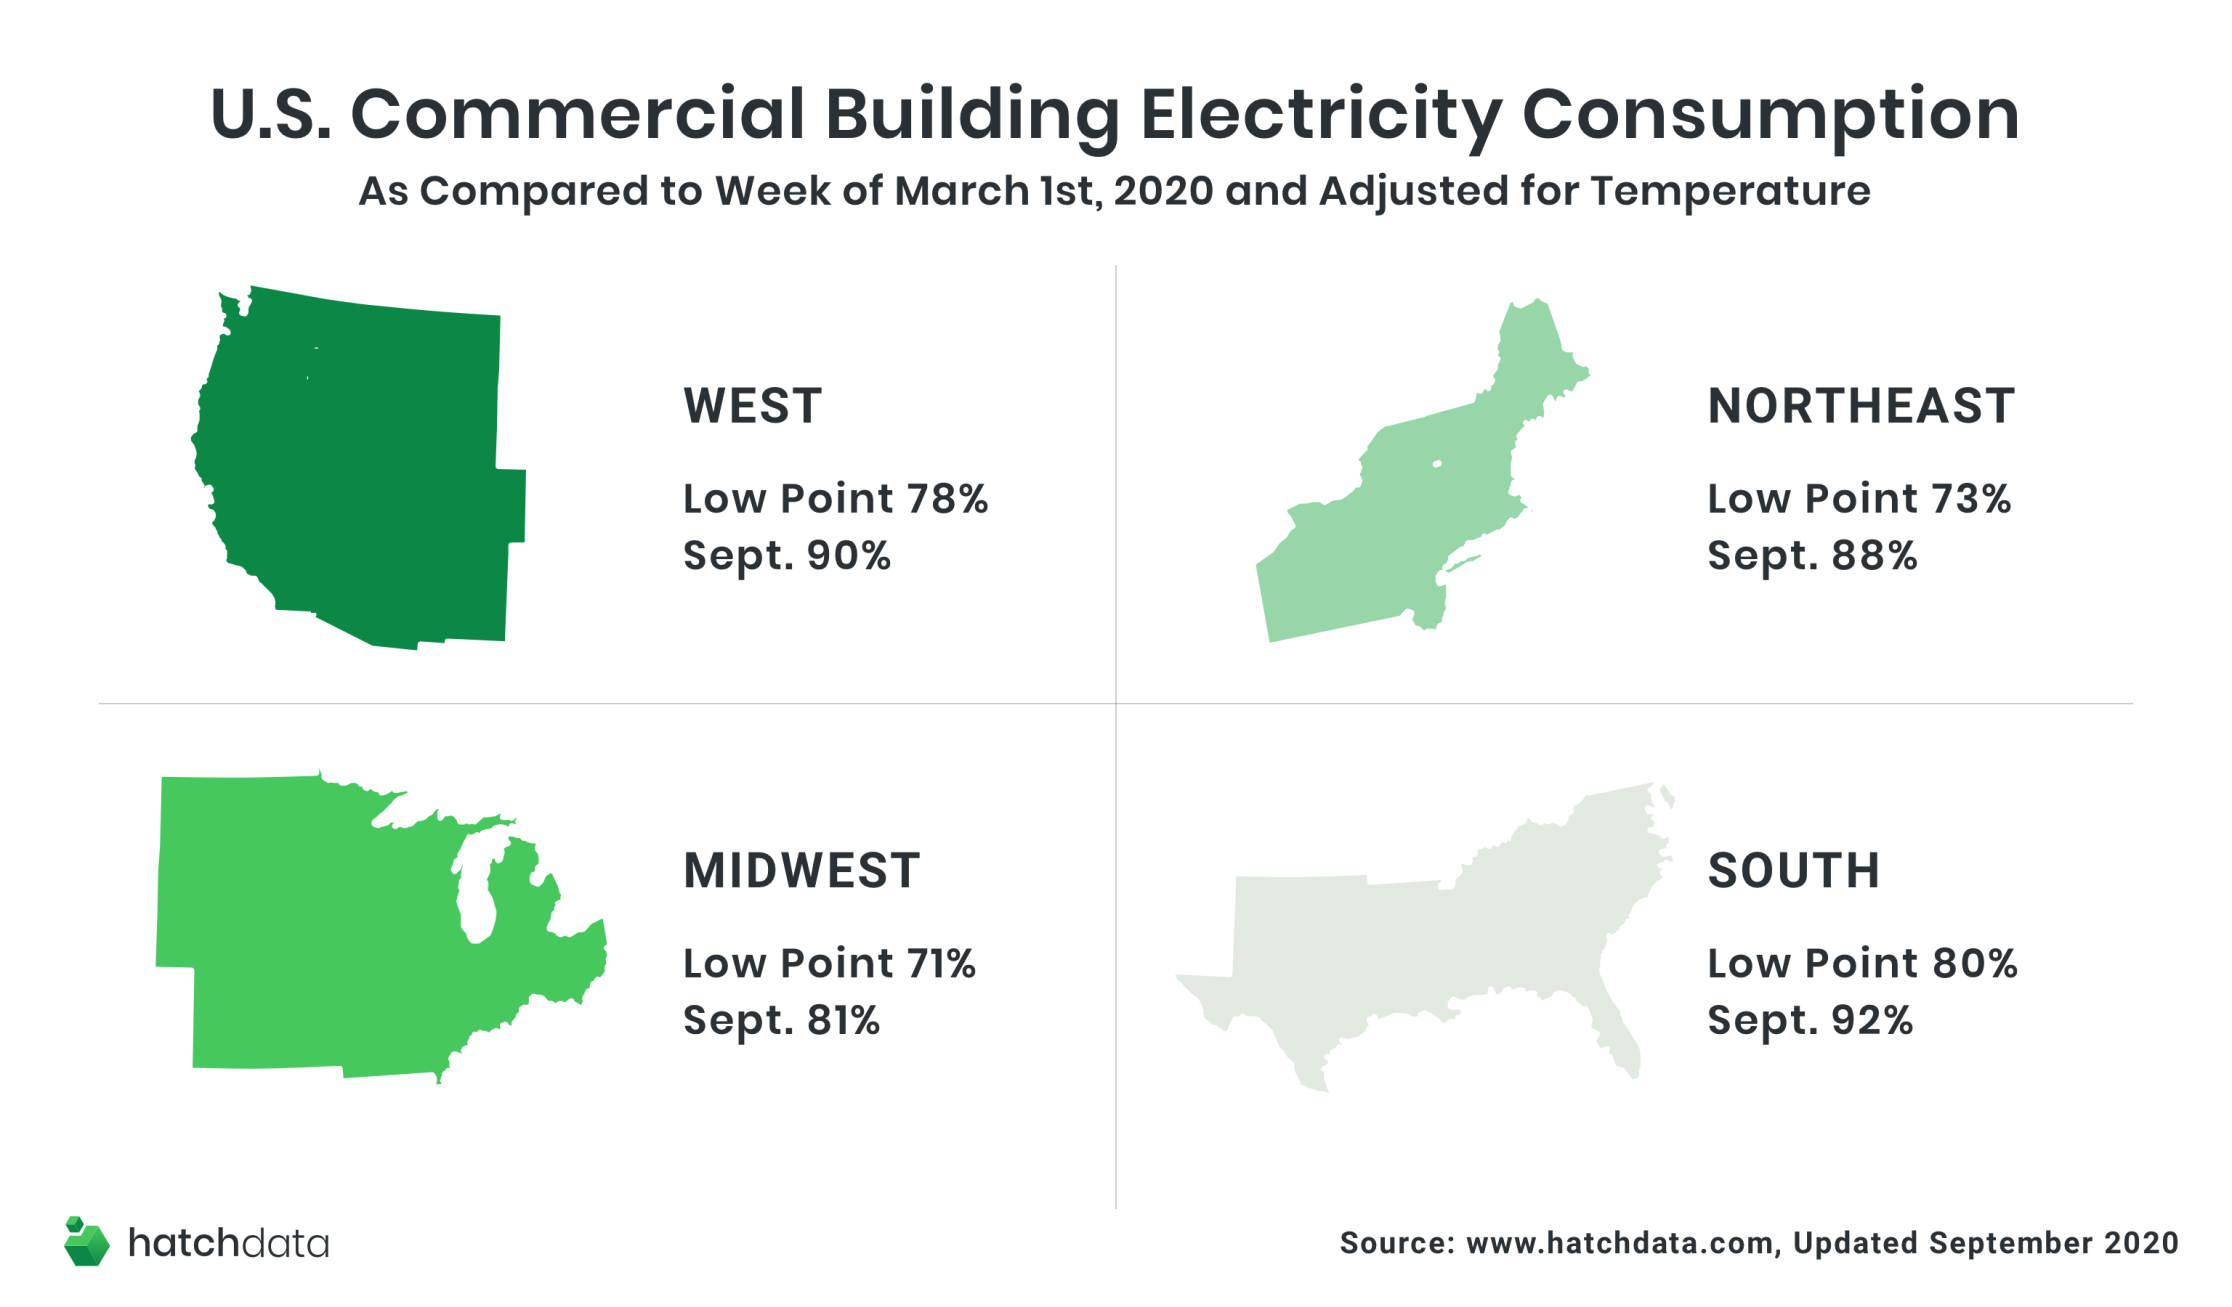 US Commercial Building Energy Consumption By Region